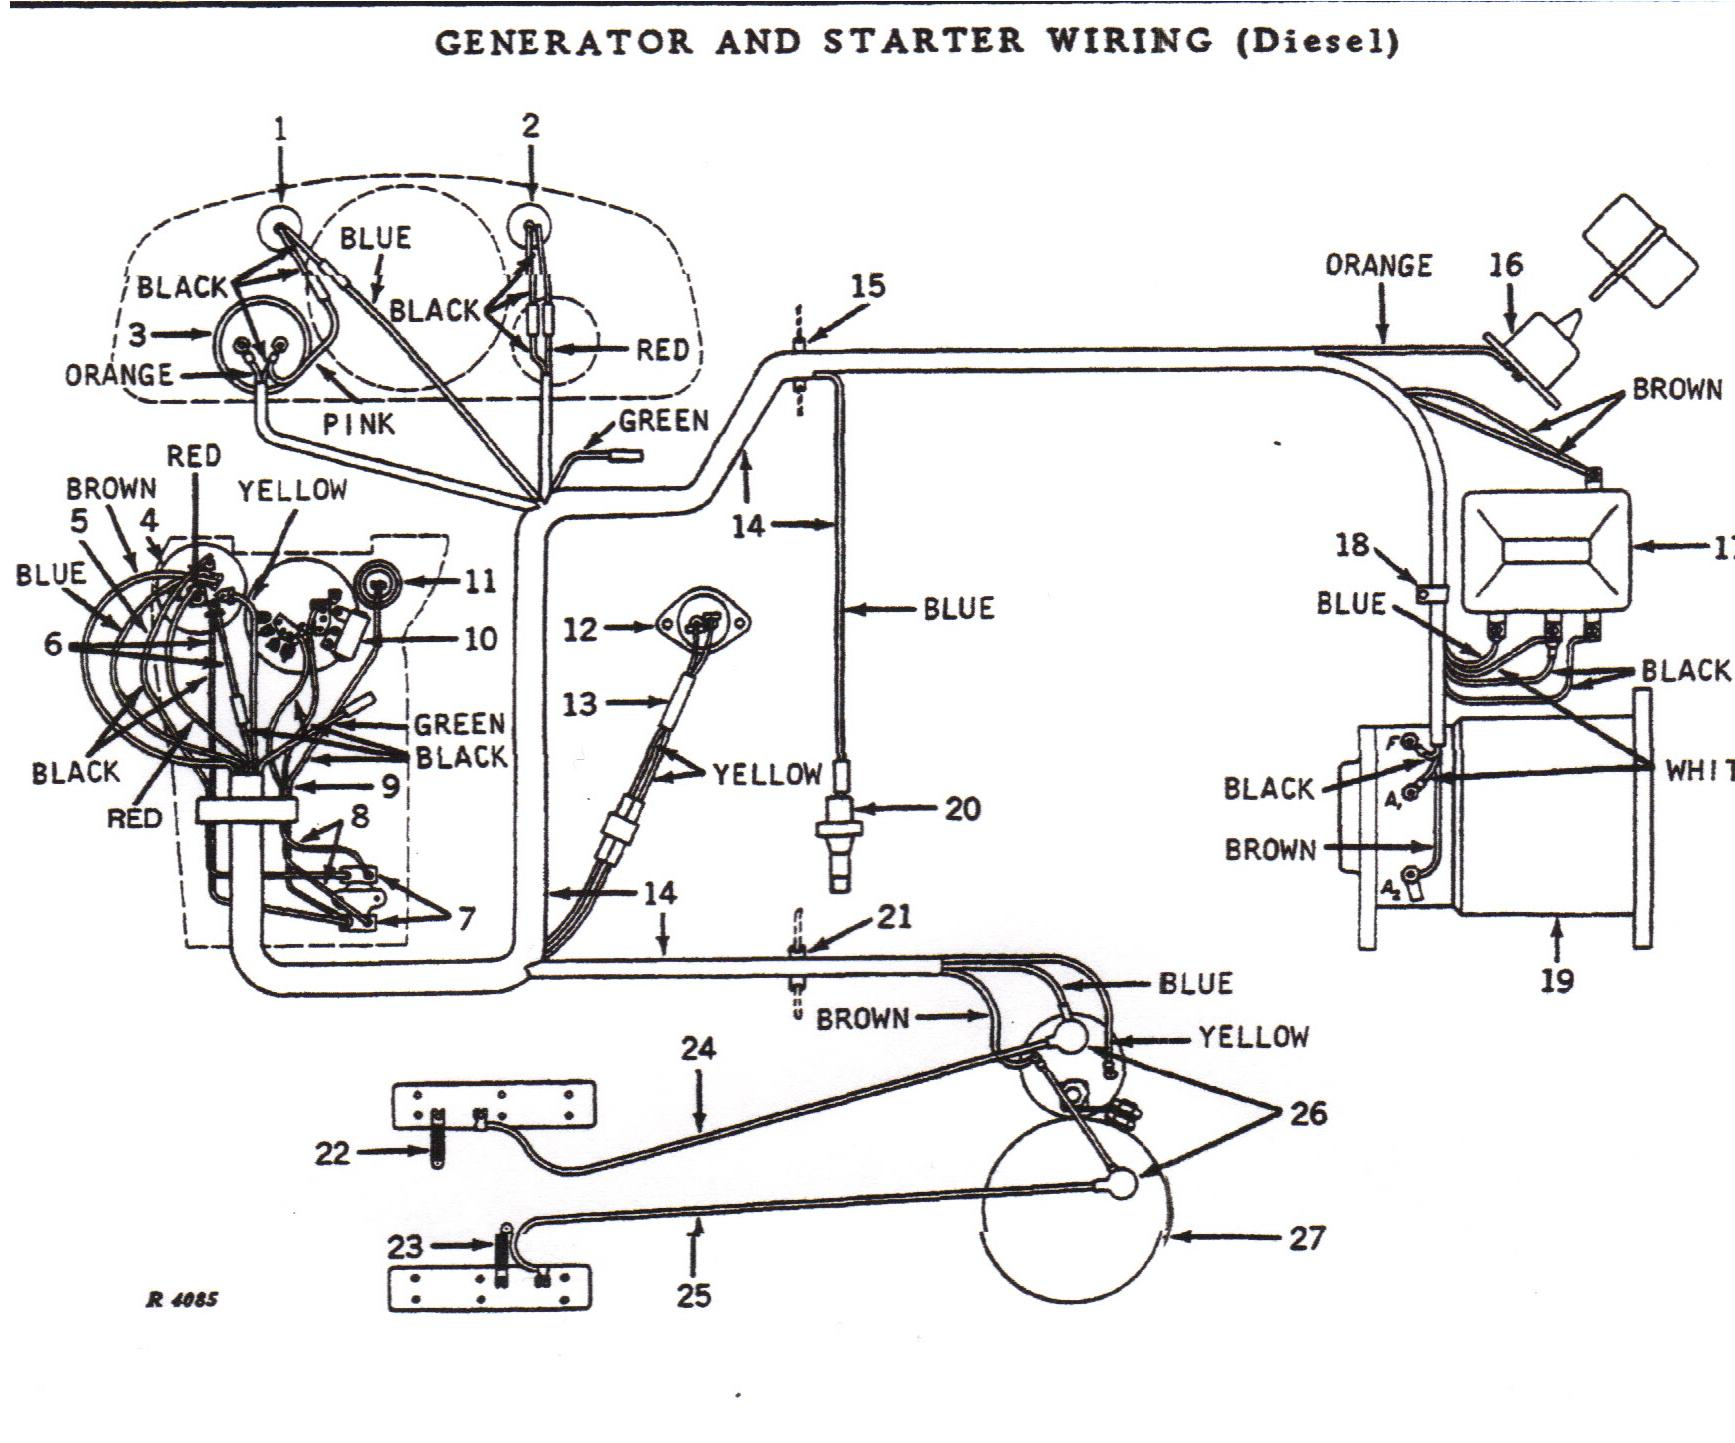 Ezgo Starter Wiring Diagram Control For A Ez Go Gas Golf Cart Generator In Search Of The Injector Pump